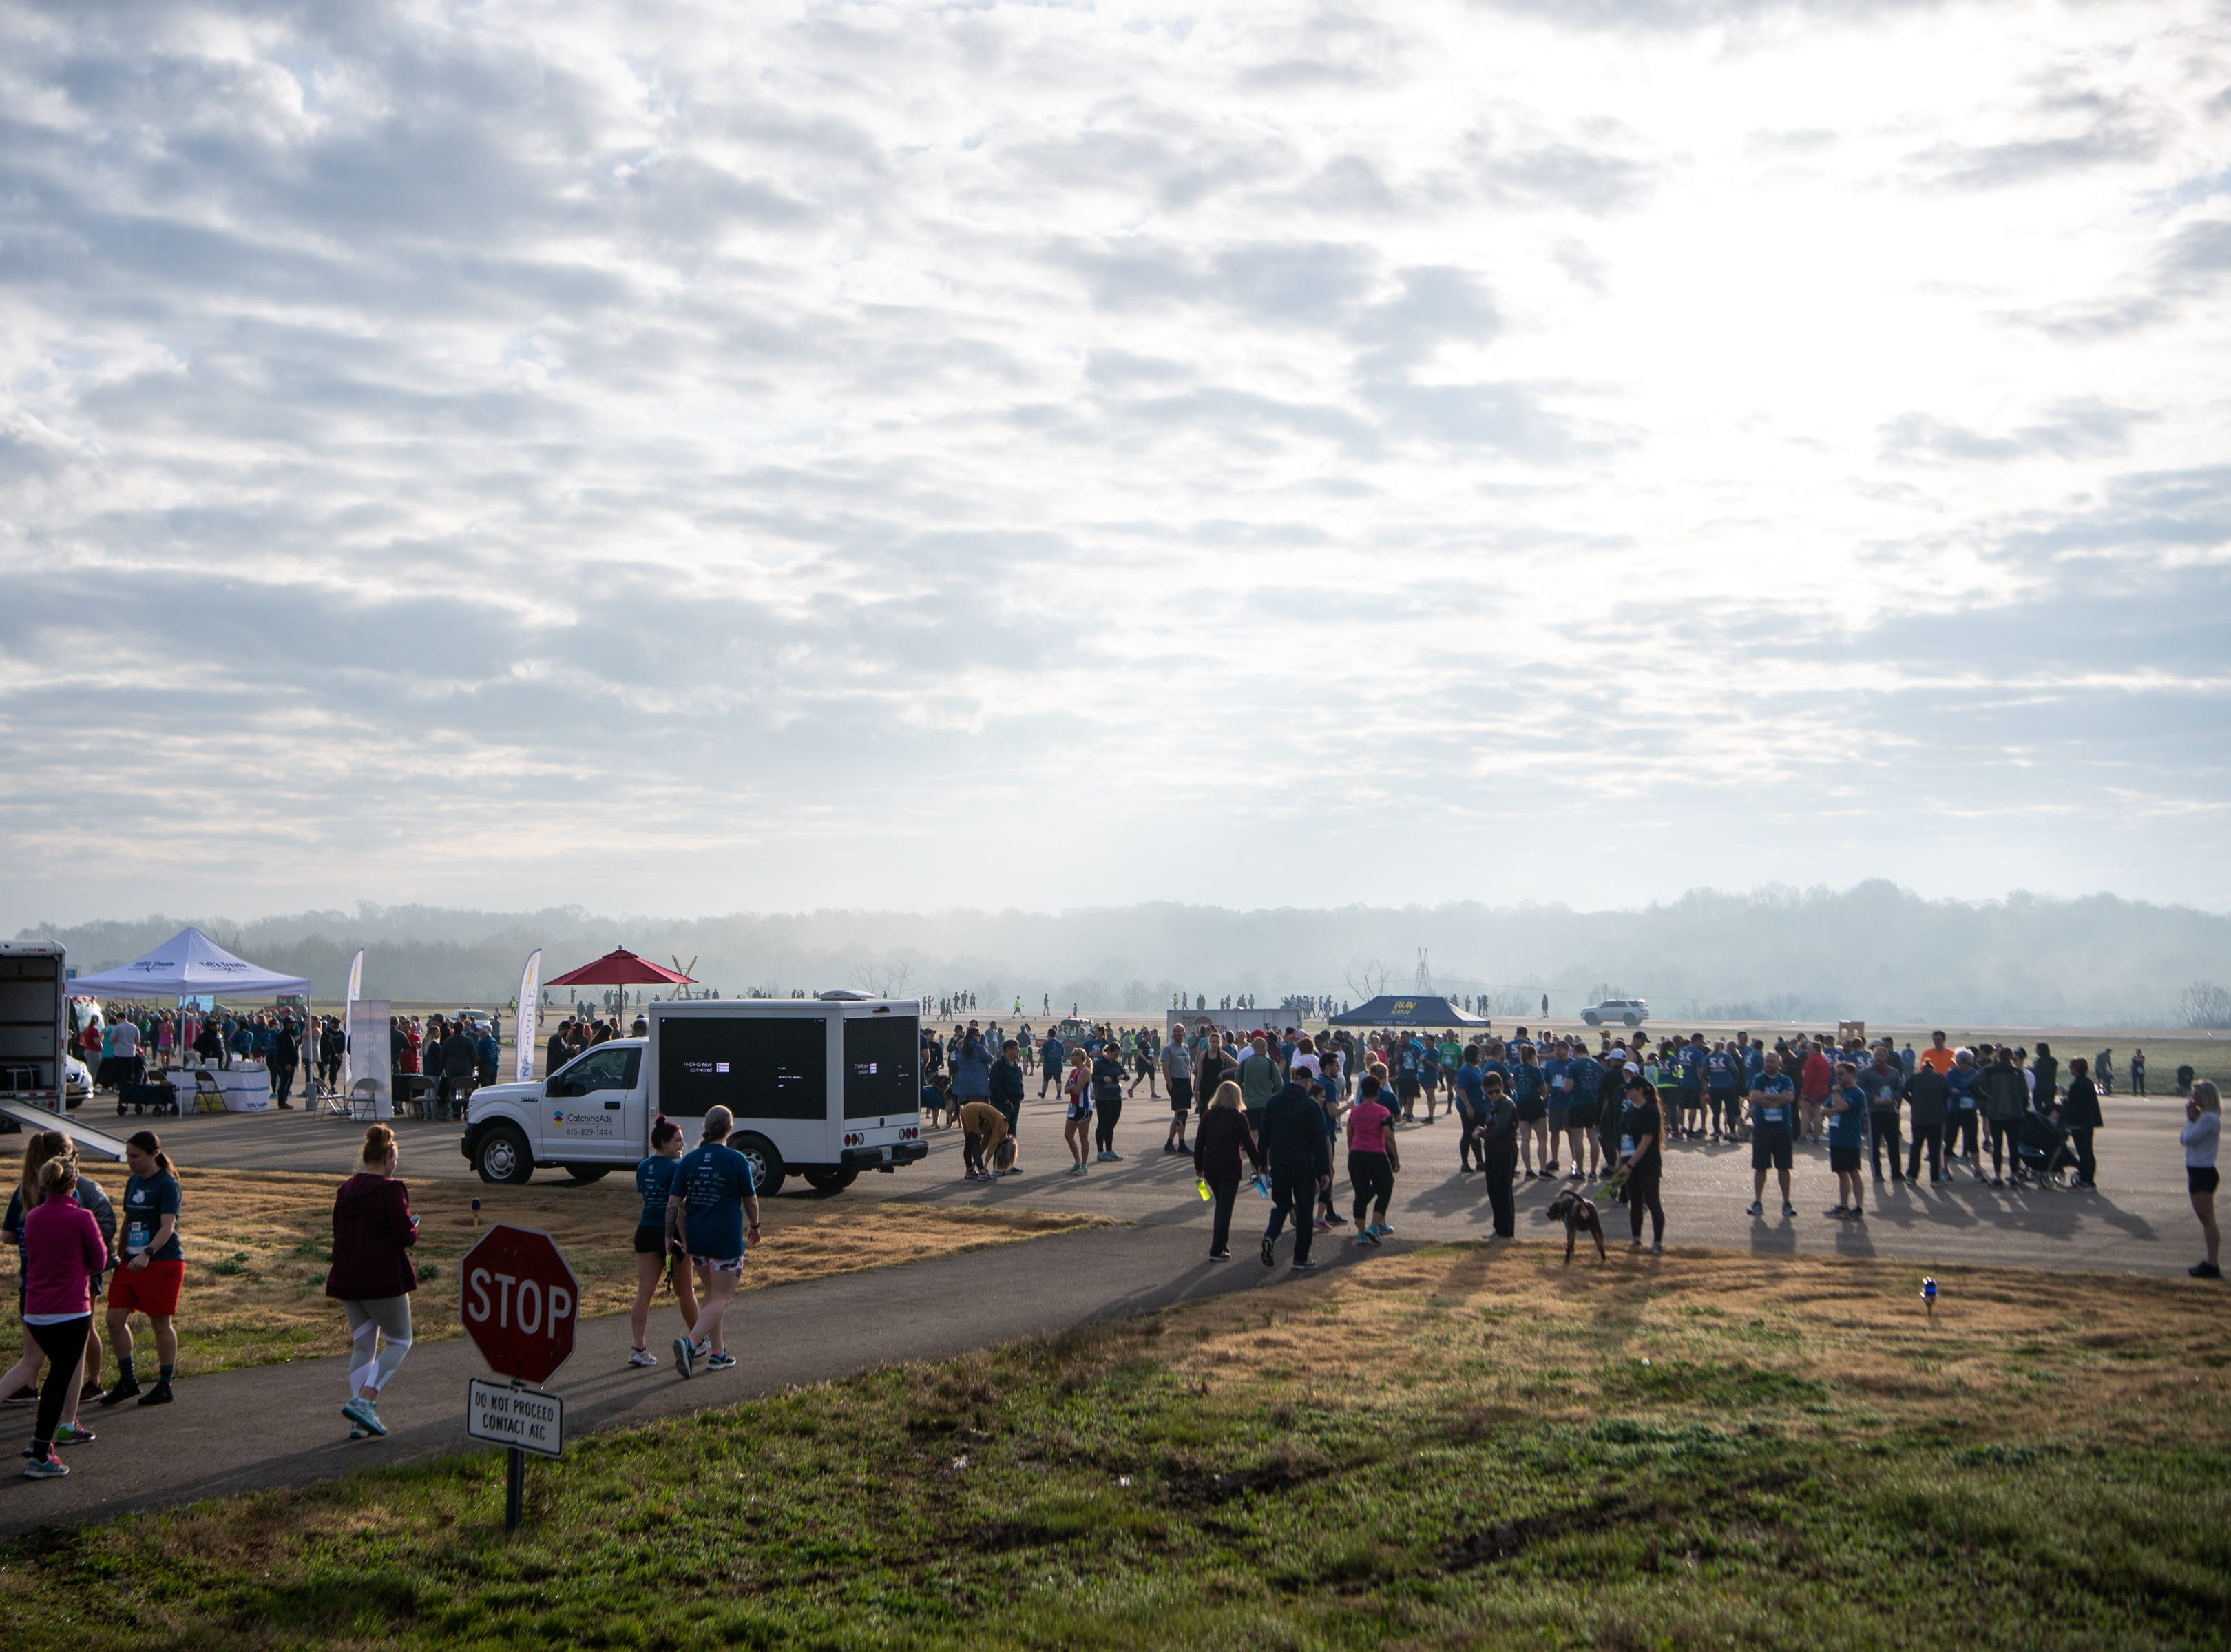 People arrive at the BNA 5K on the Runway at Nashville International Airport on Runway 2R/20L Saturday, April 6, 2019, in Nashville, Tenn.